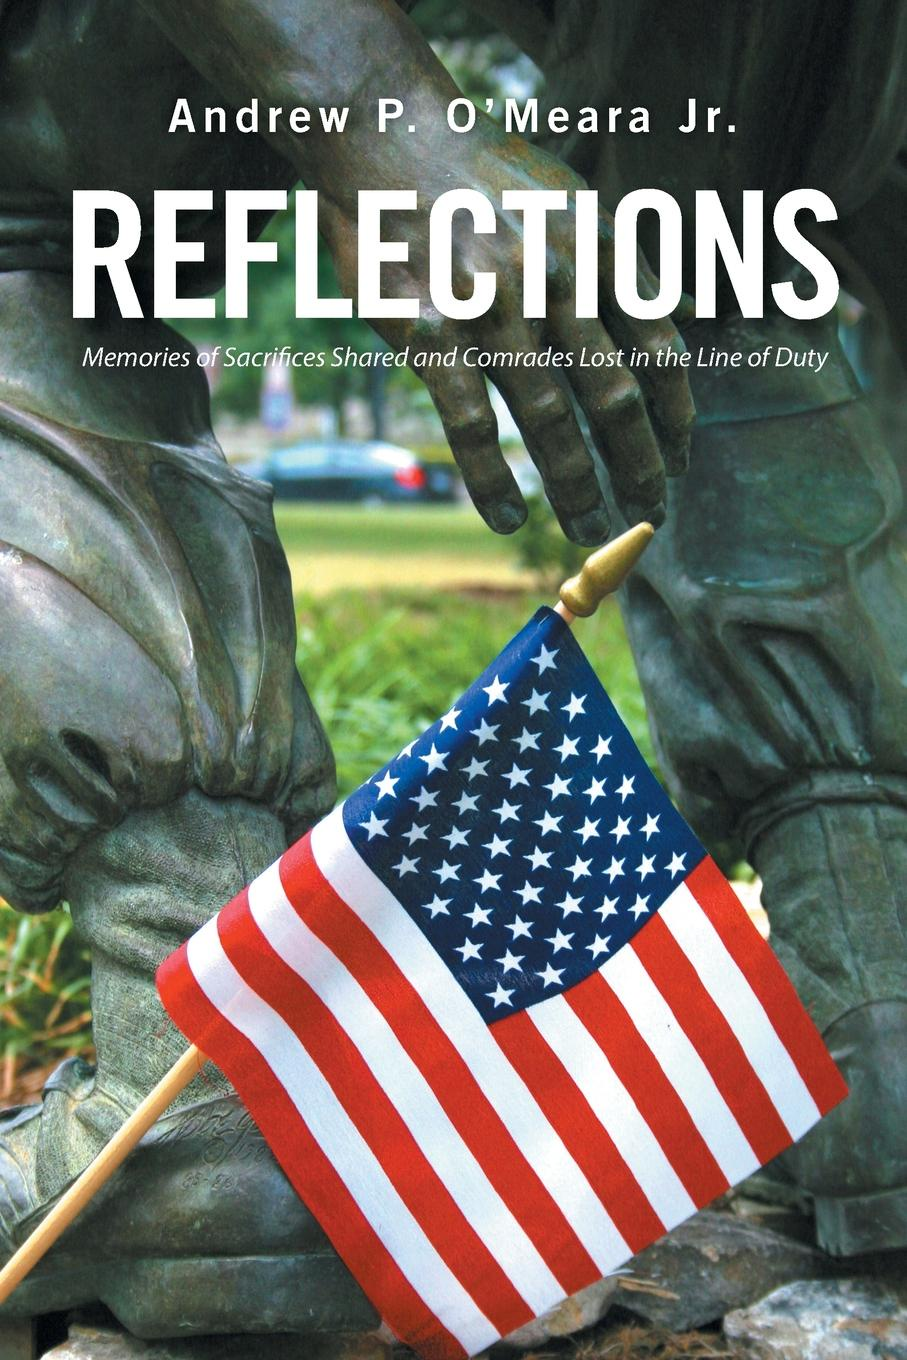 Andrew P. O'Meara Jr. Reflections. Memories of Sacrifices Shared and Comrades Lost in the Line of Duty three comrades